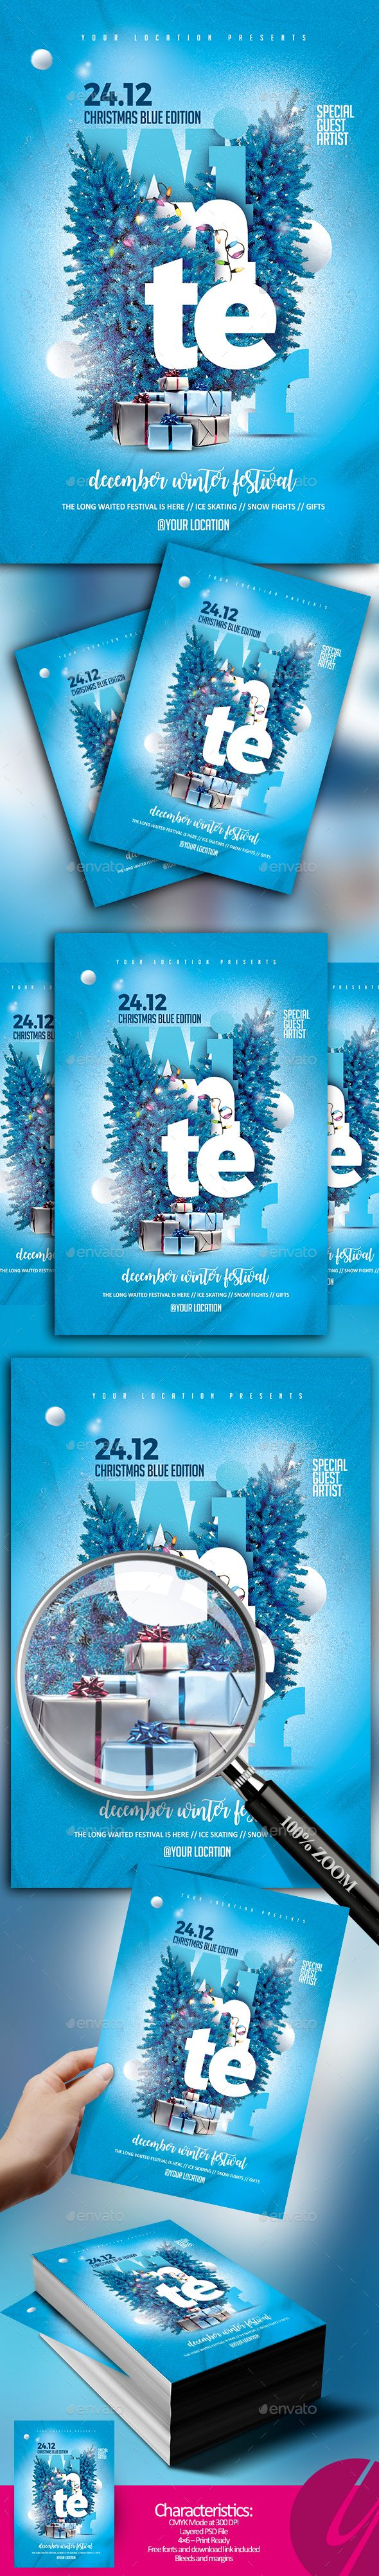 Winter Festival — Photoshop PSD #disco #yczcreative • Available here ➝ https://graphicriver.net/item/winter-festival/20921811?ref=pxcr